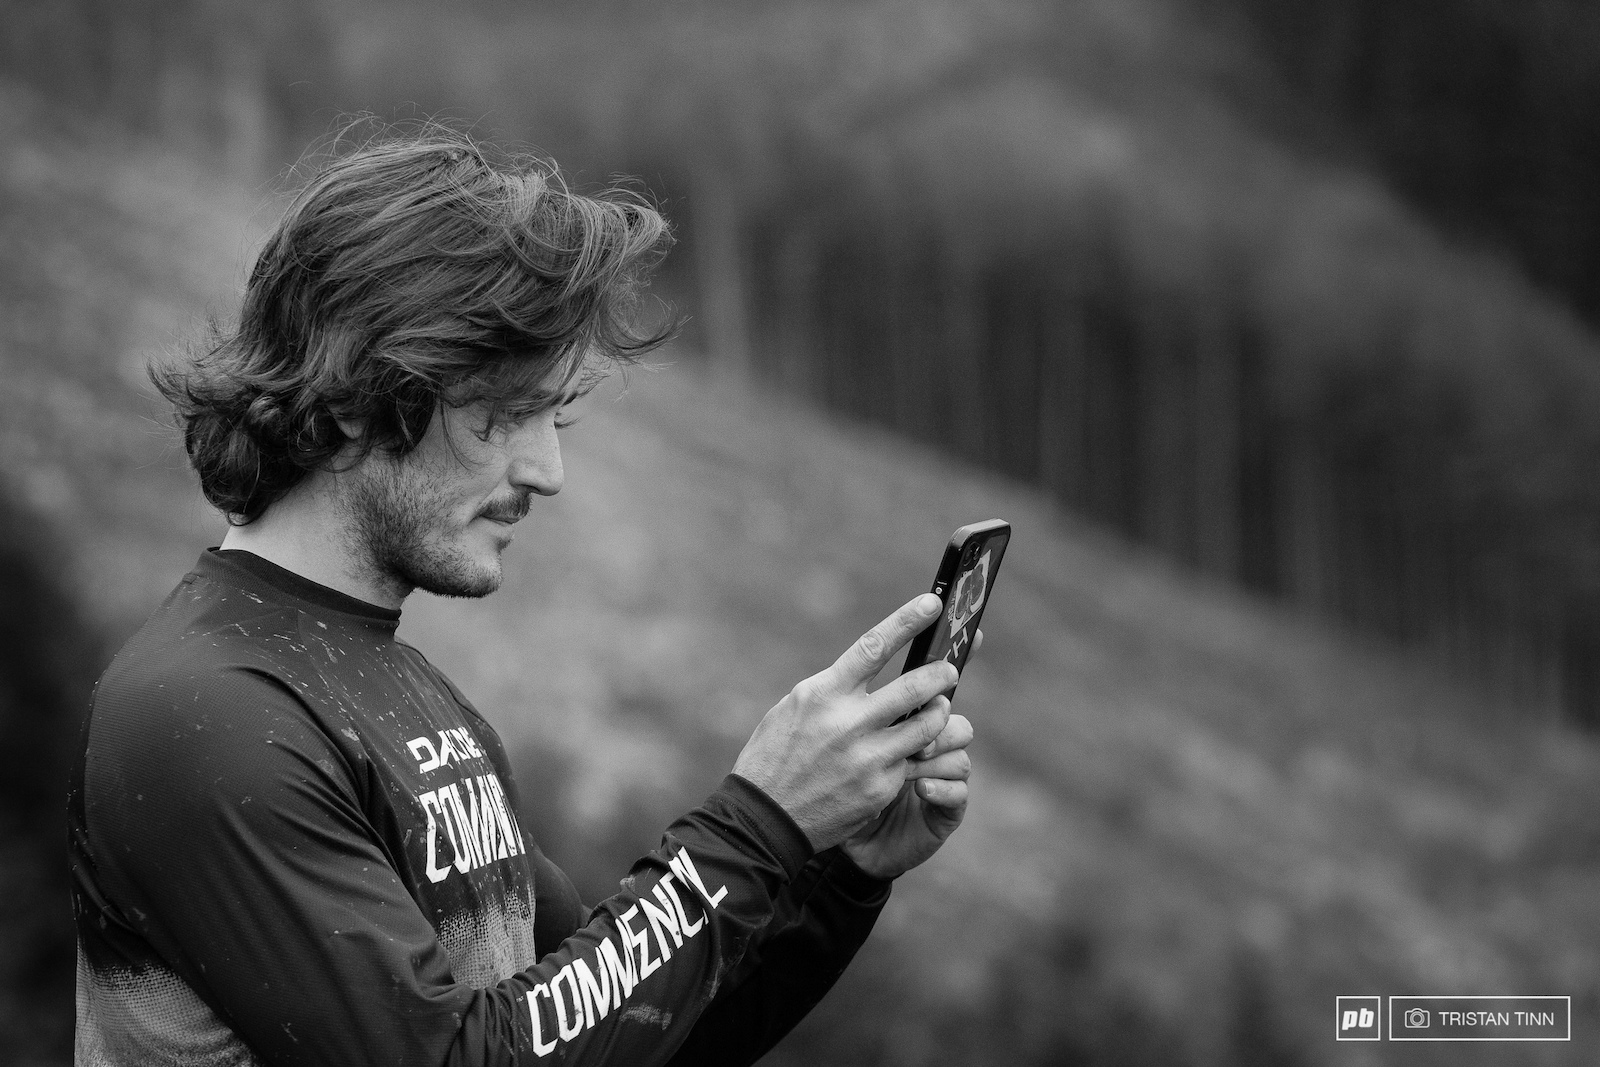 Yoann hard at work on the Pinkbike instagram story